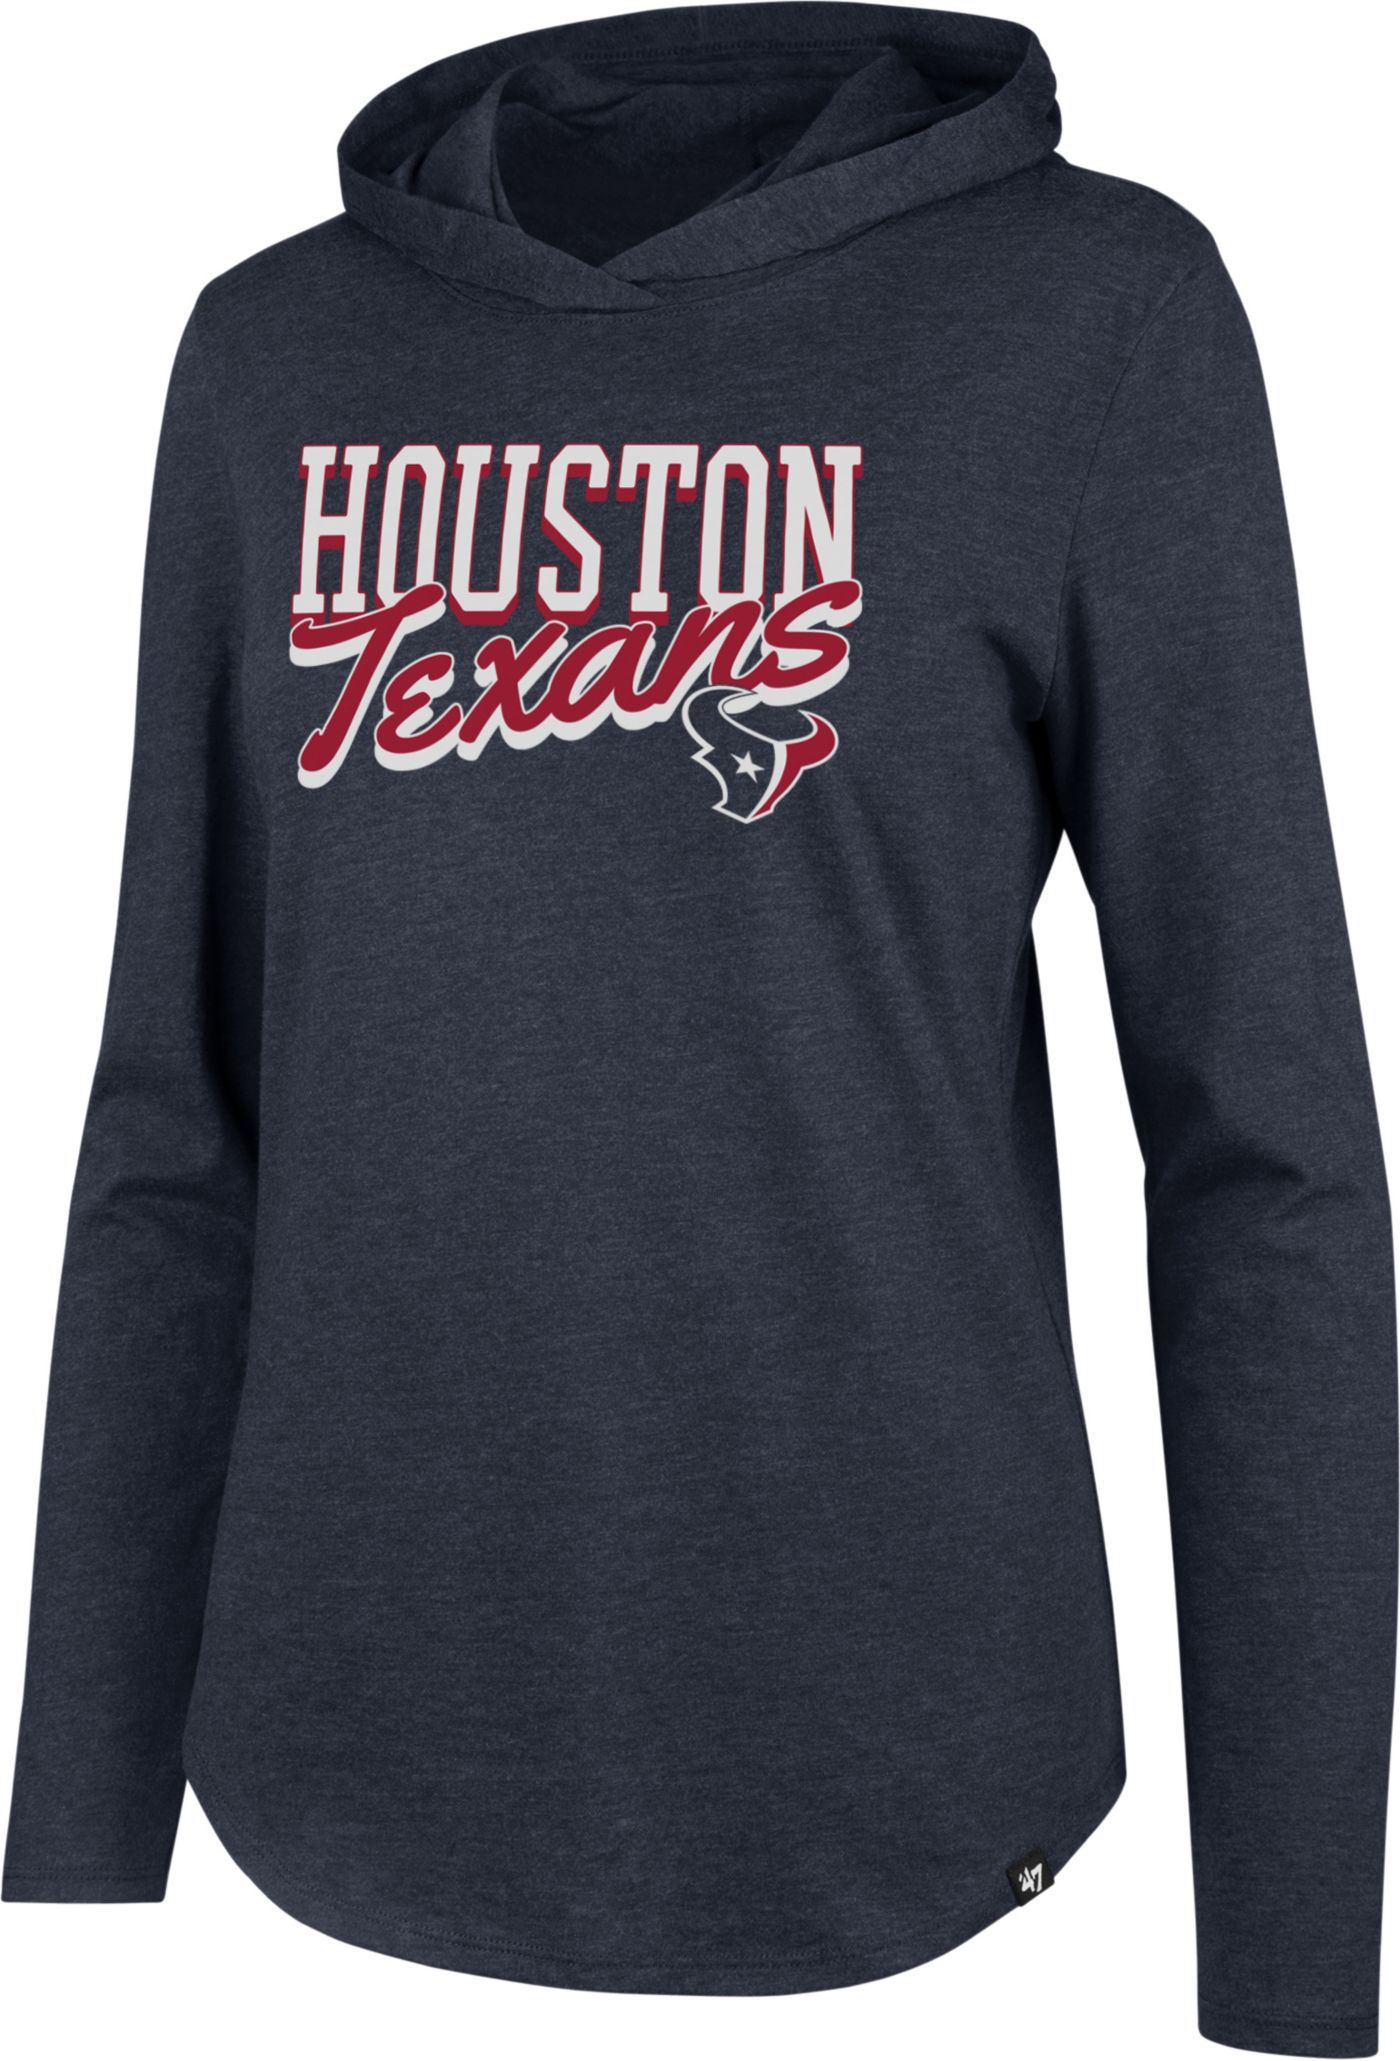 '47 Women's Houston Texans Club Navy Hooded Long Sleeve Shirt